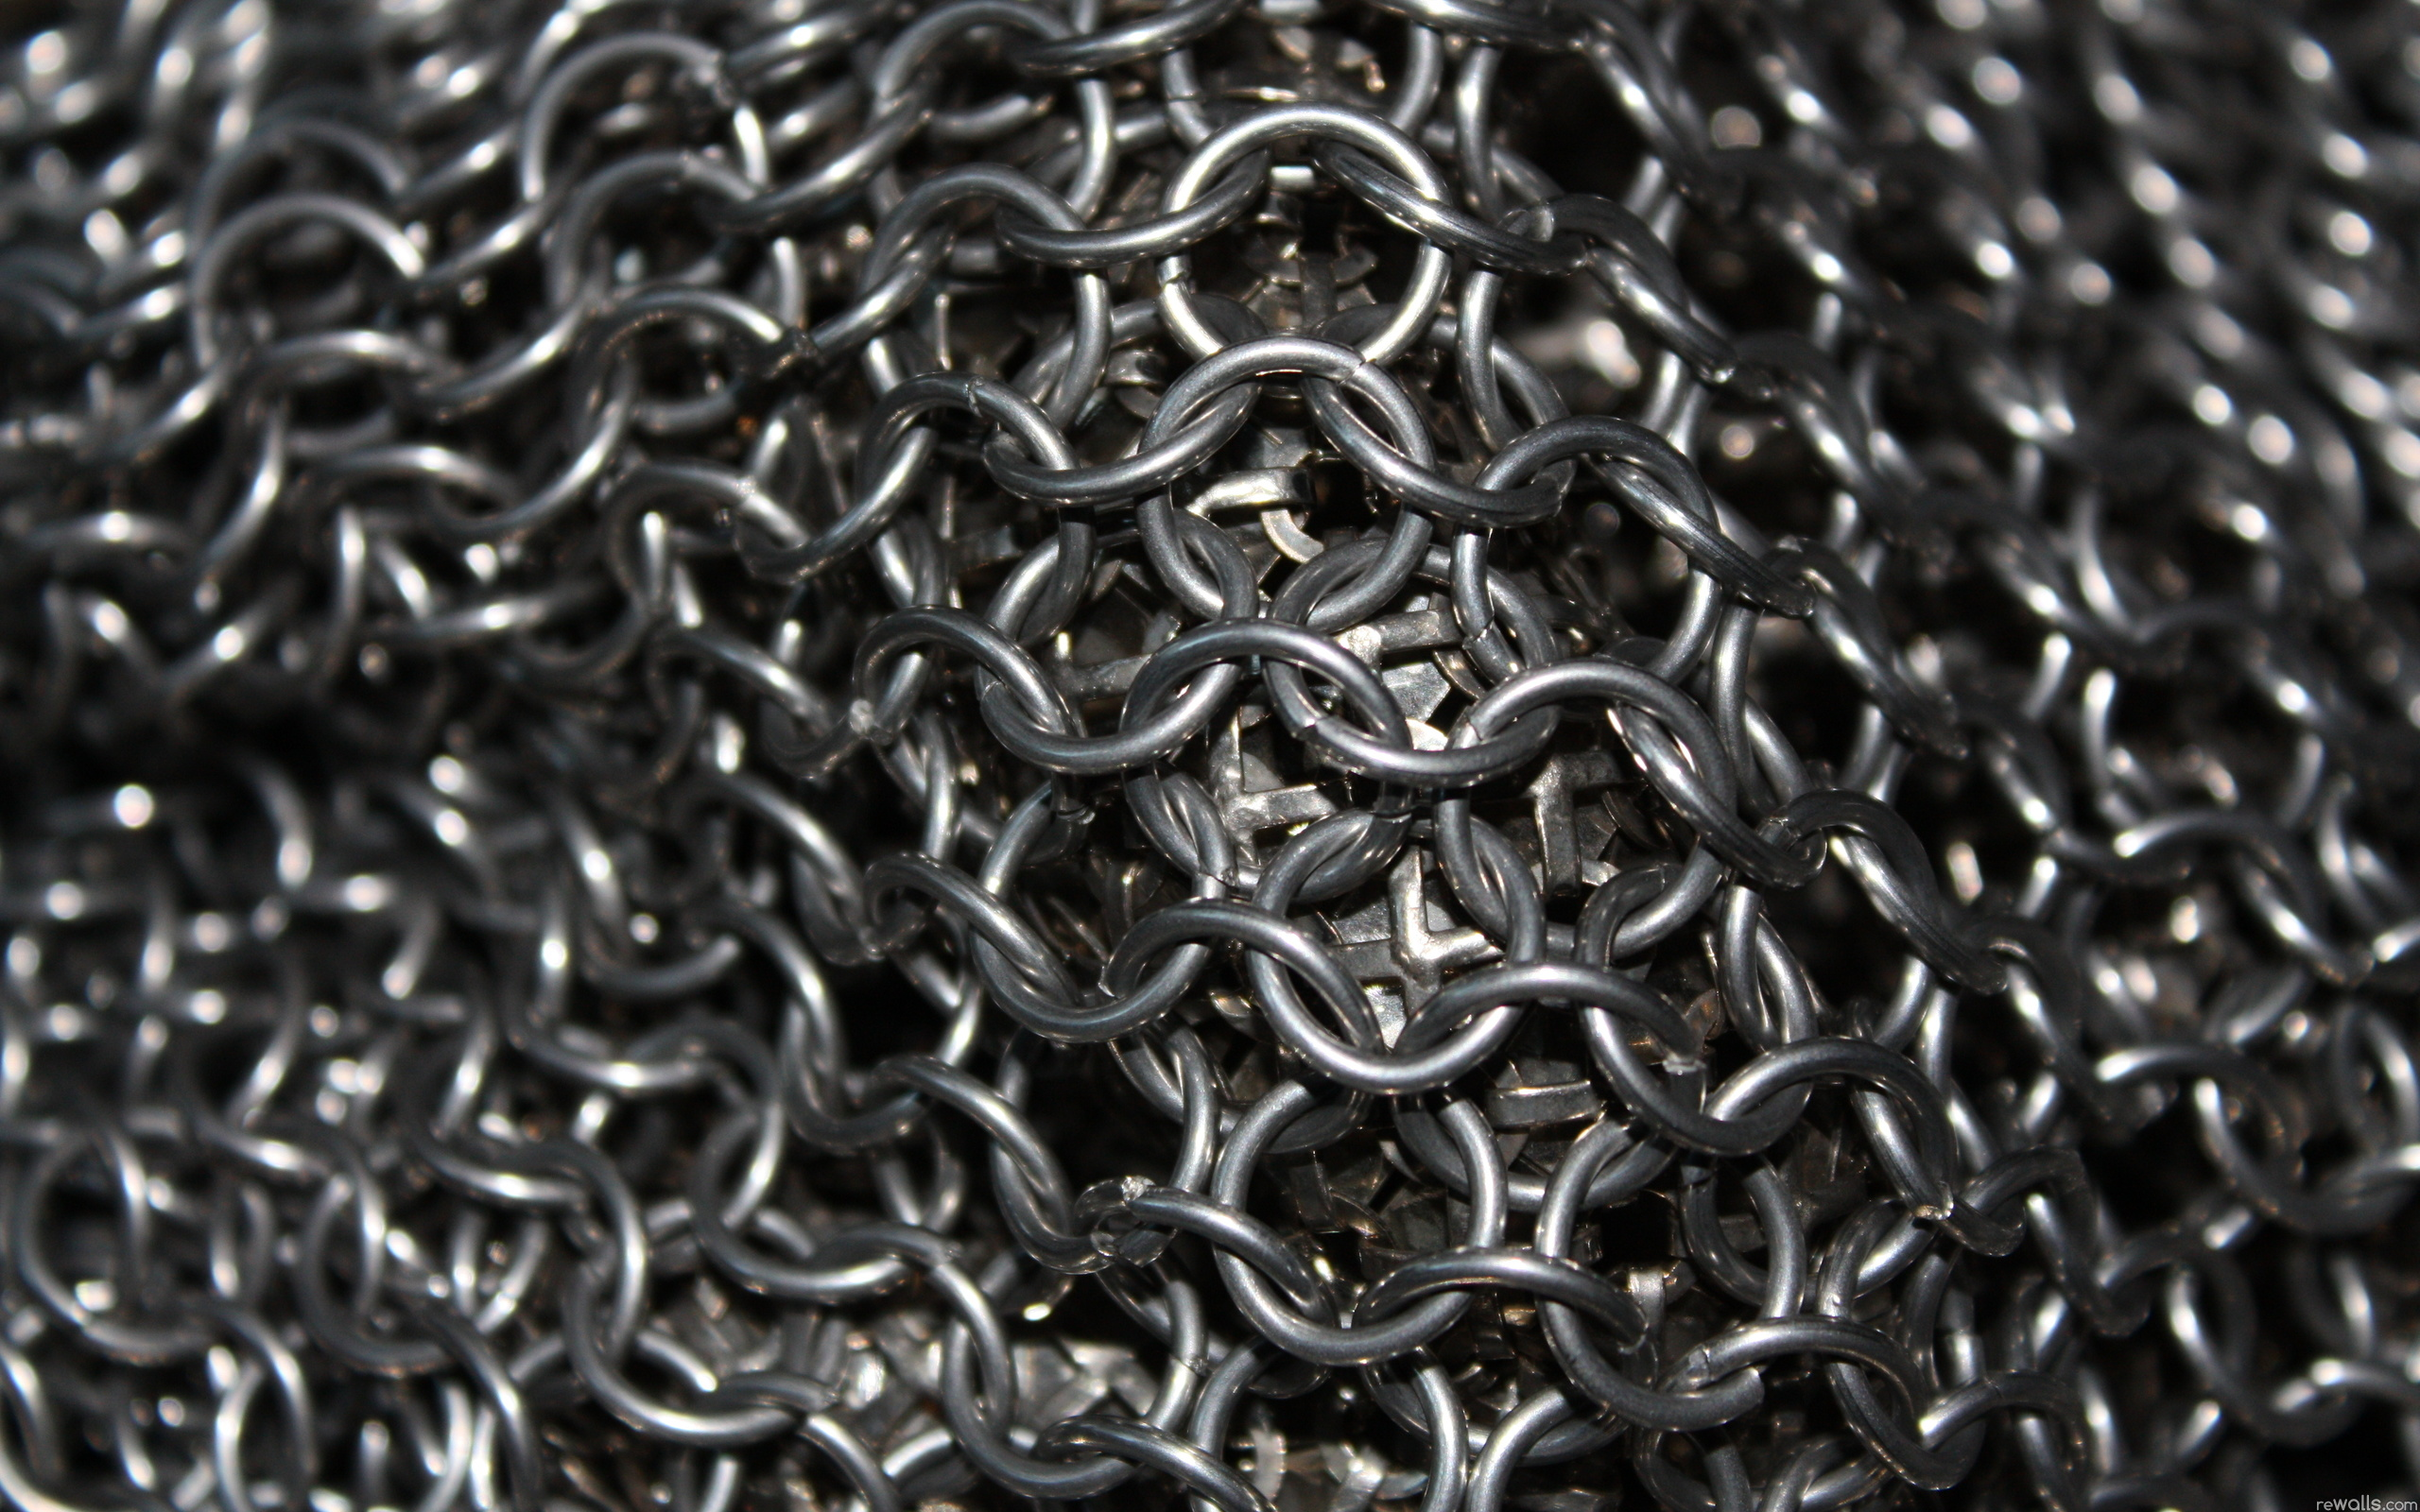 texture , metal rings, background, iron, metal